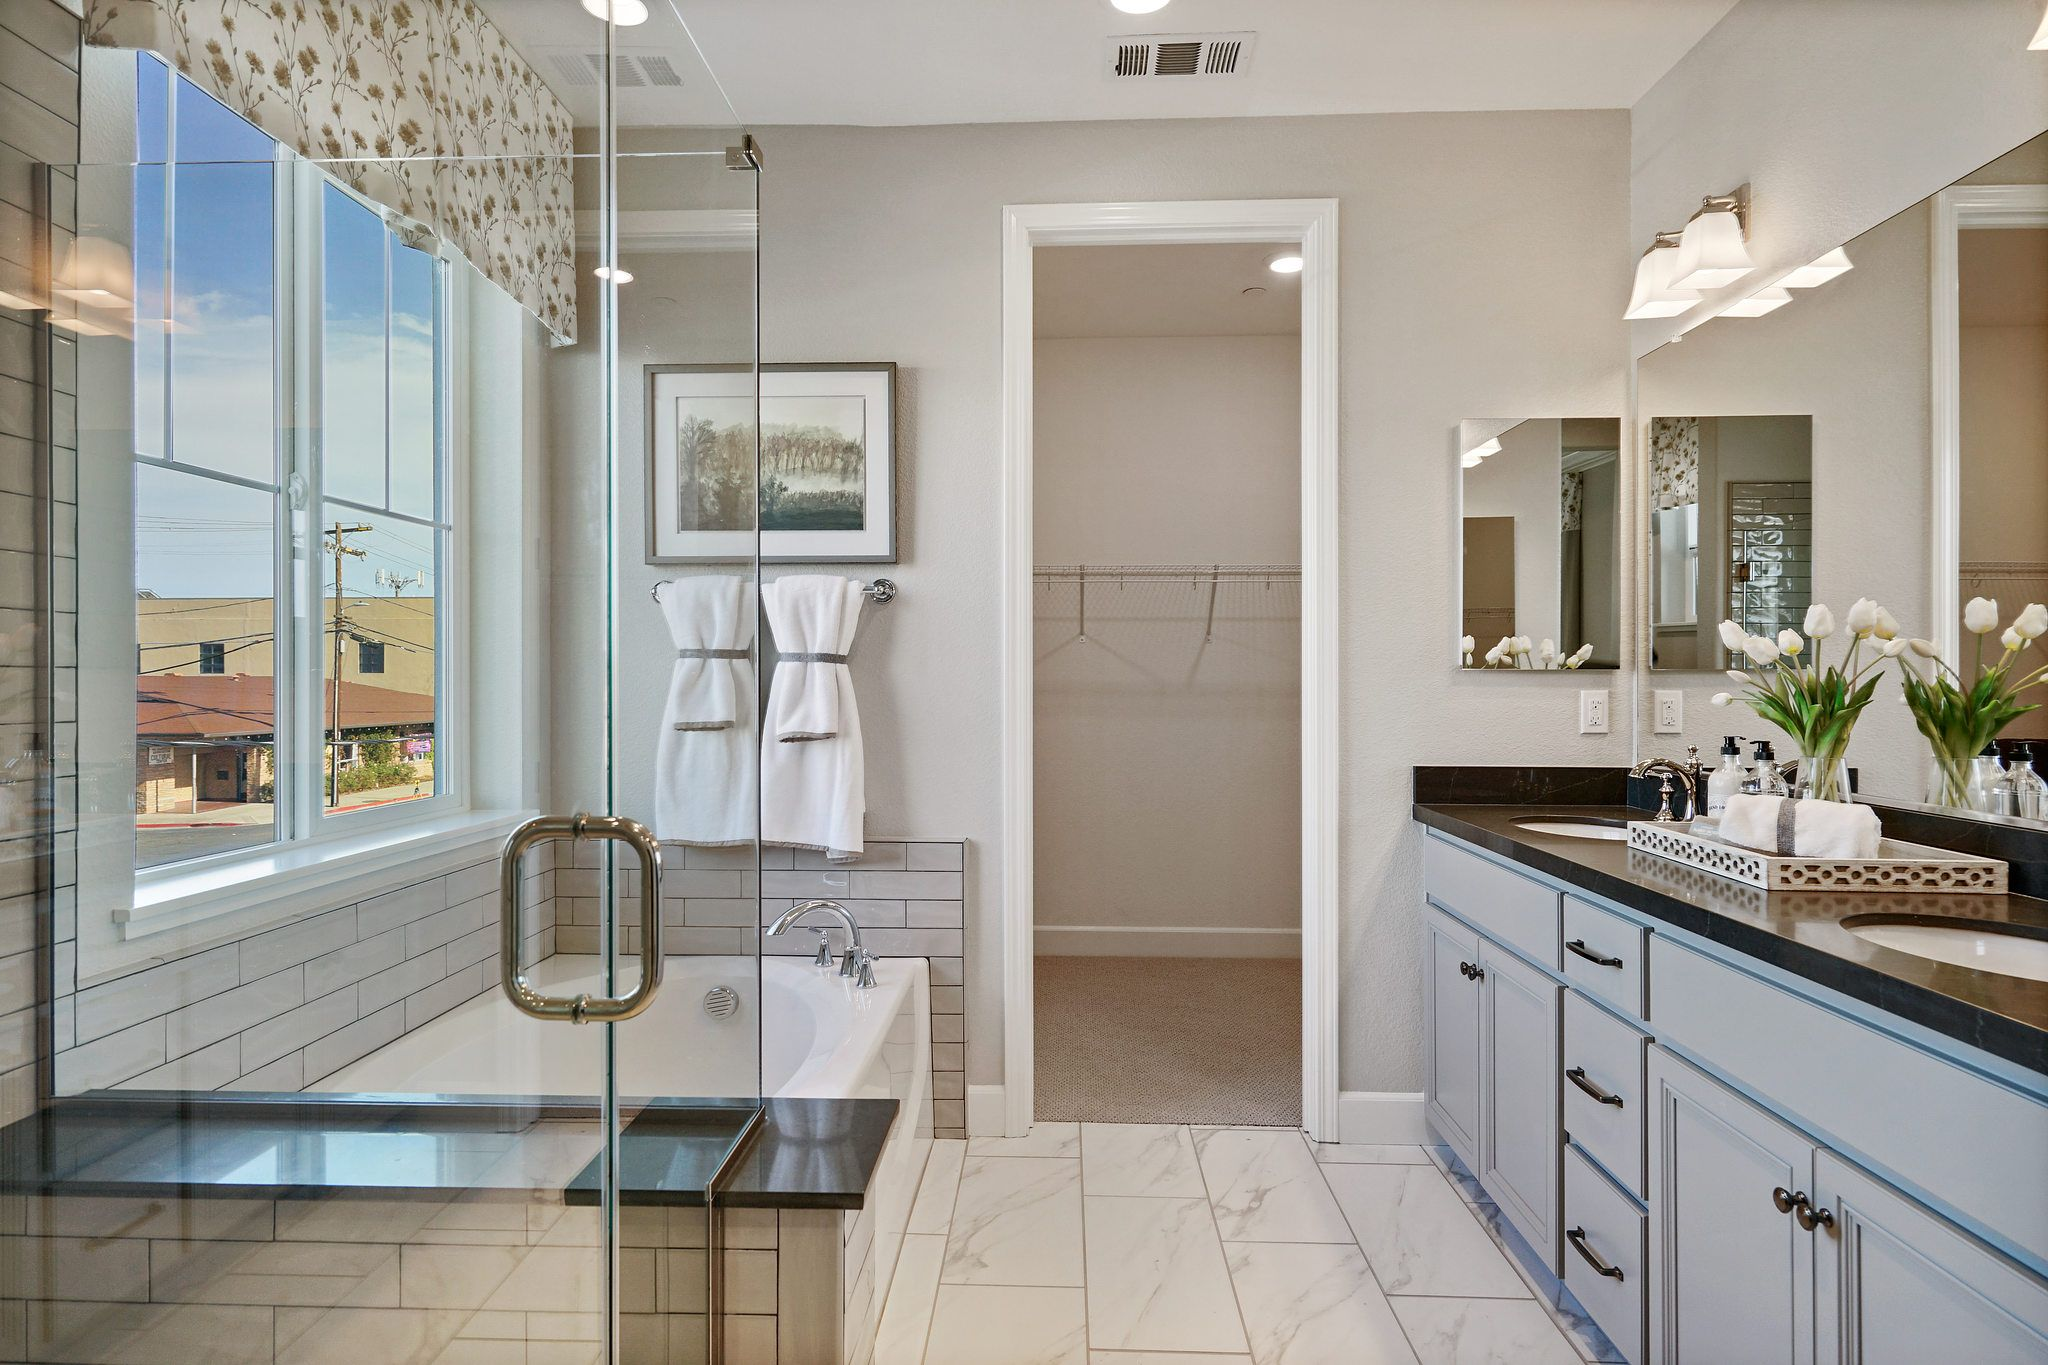 Bathroom featured in the Avalon By Discovery Homes in Oakland-Alameda, CA